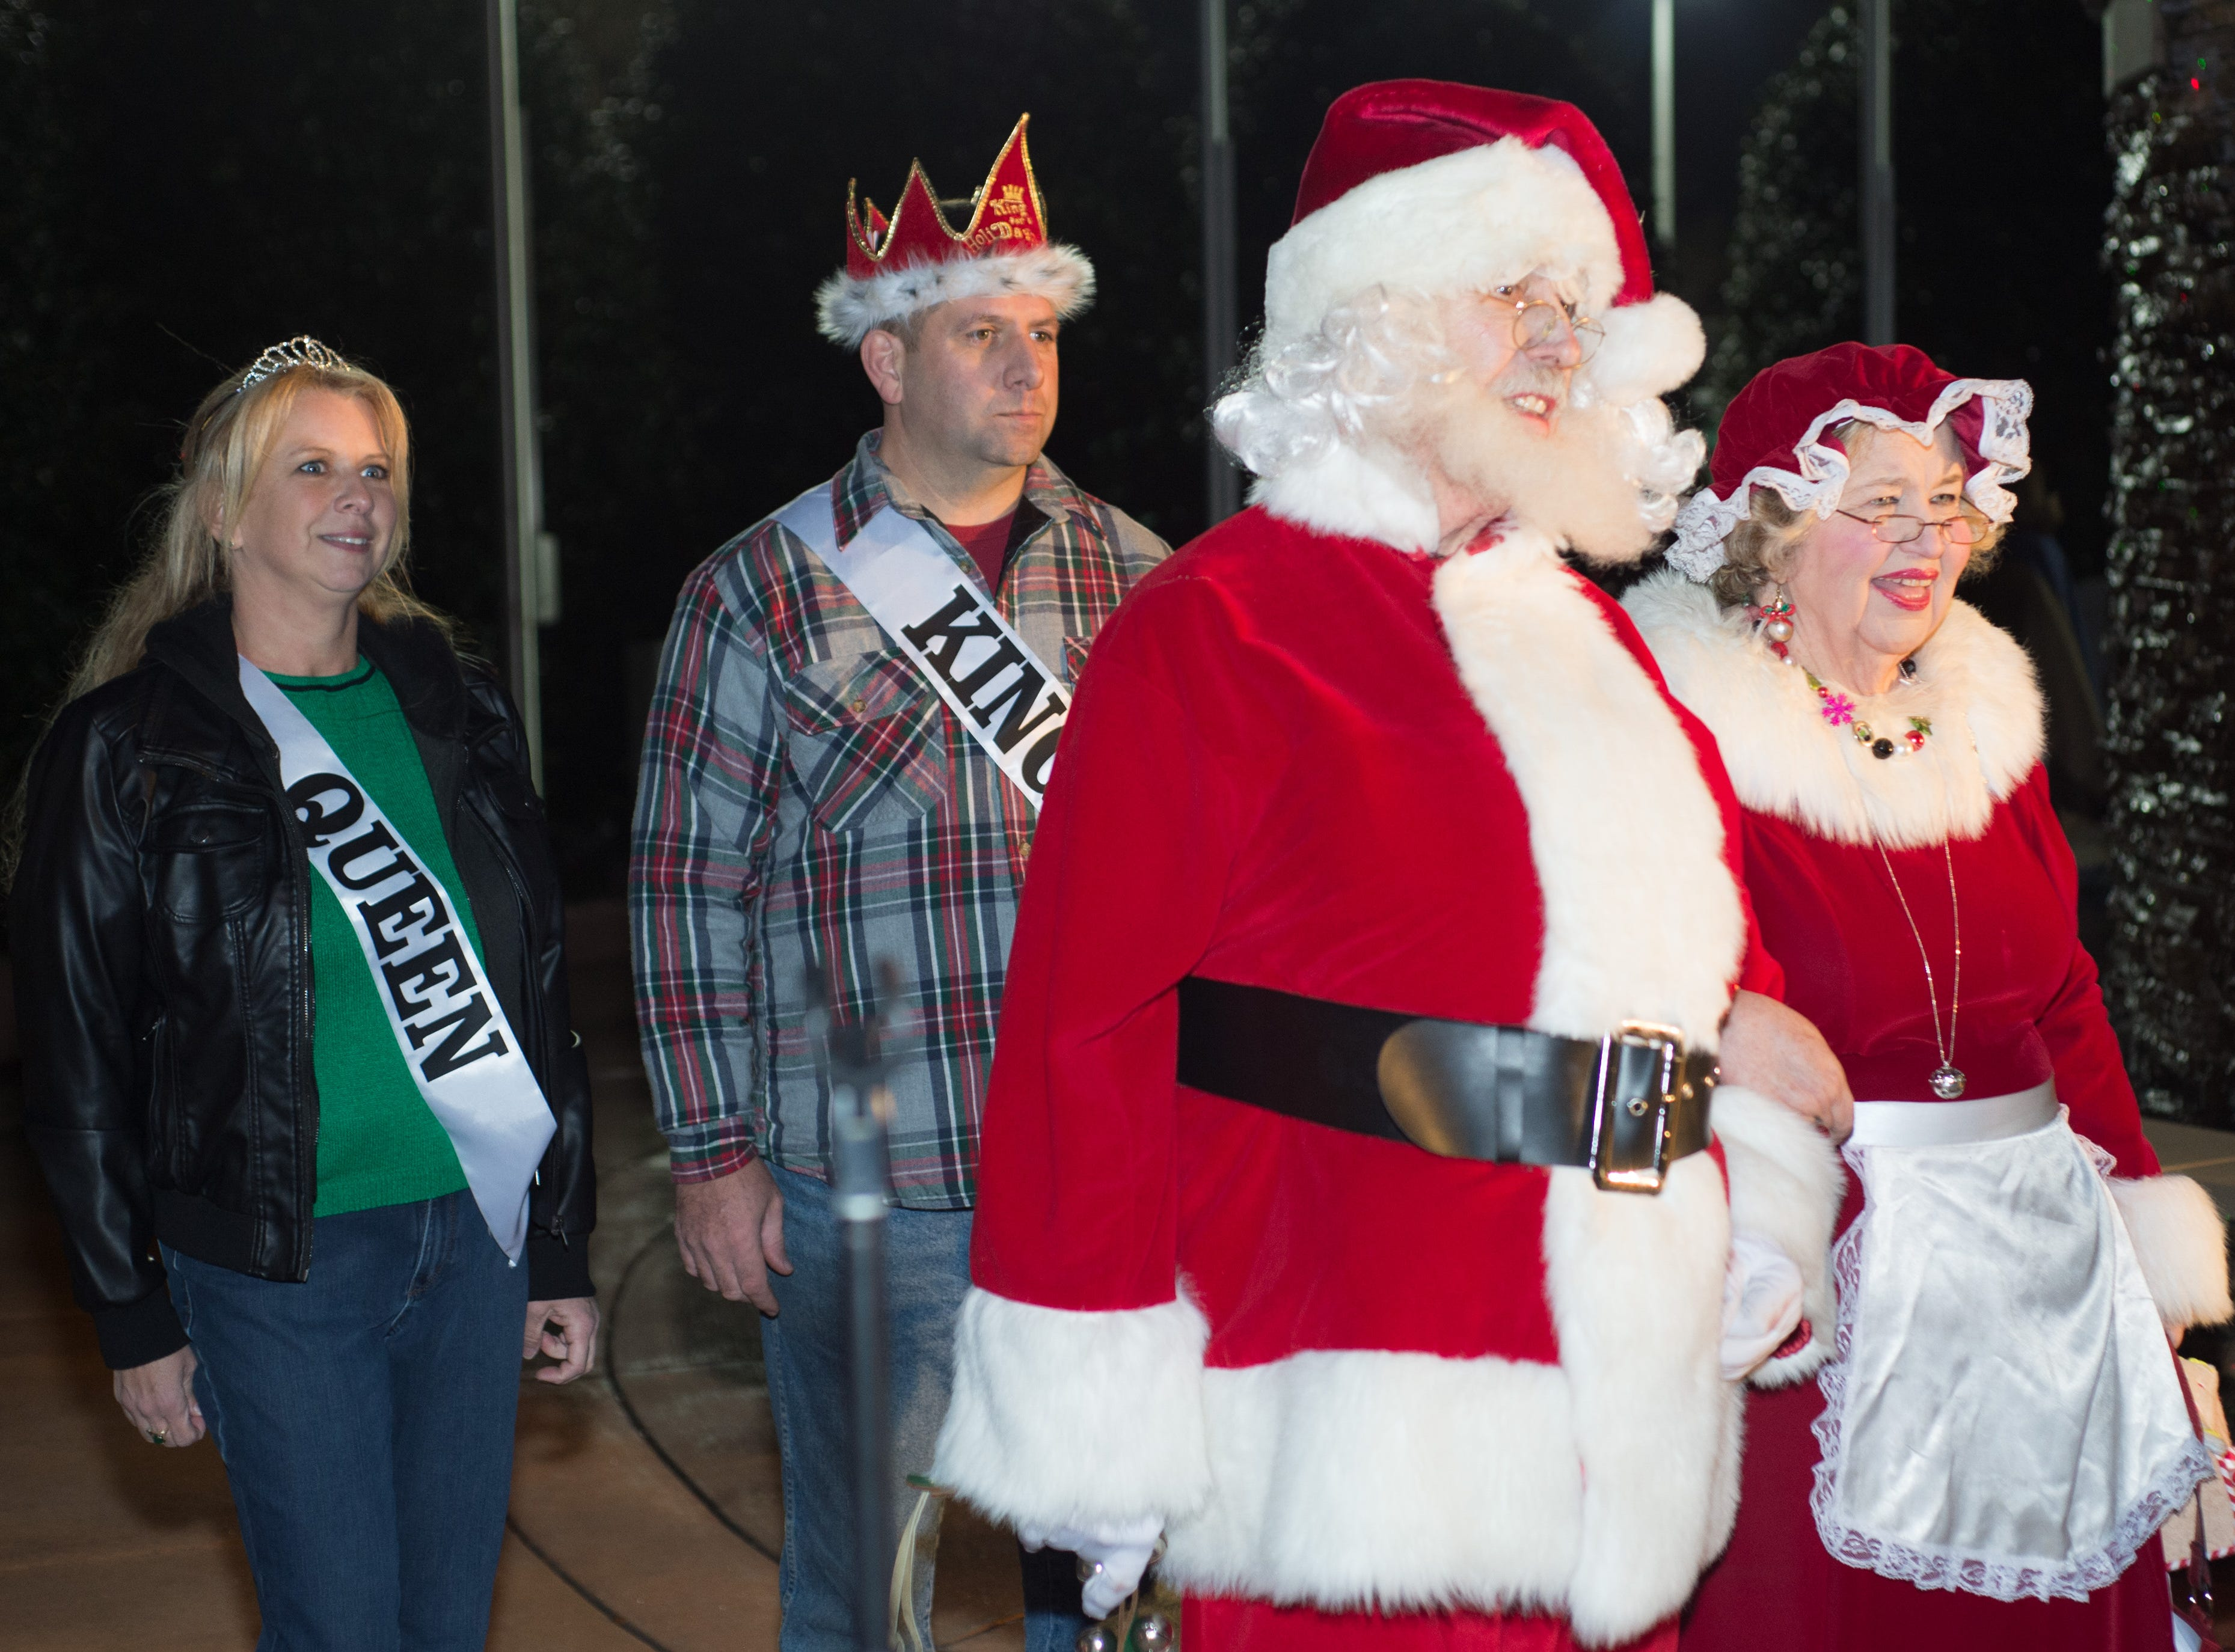 The Hendersonville HolidayFest Annual Tree Lighting Ceremony gets underway at Memorial Park on Sunday, Nov. 25.